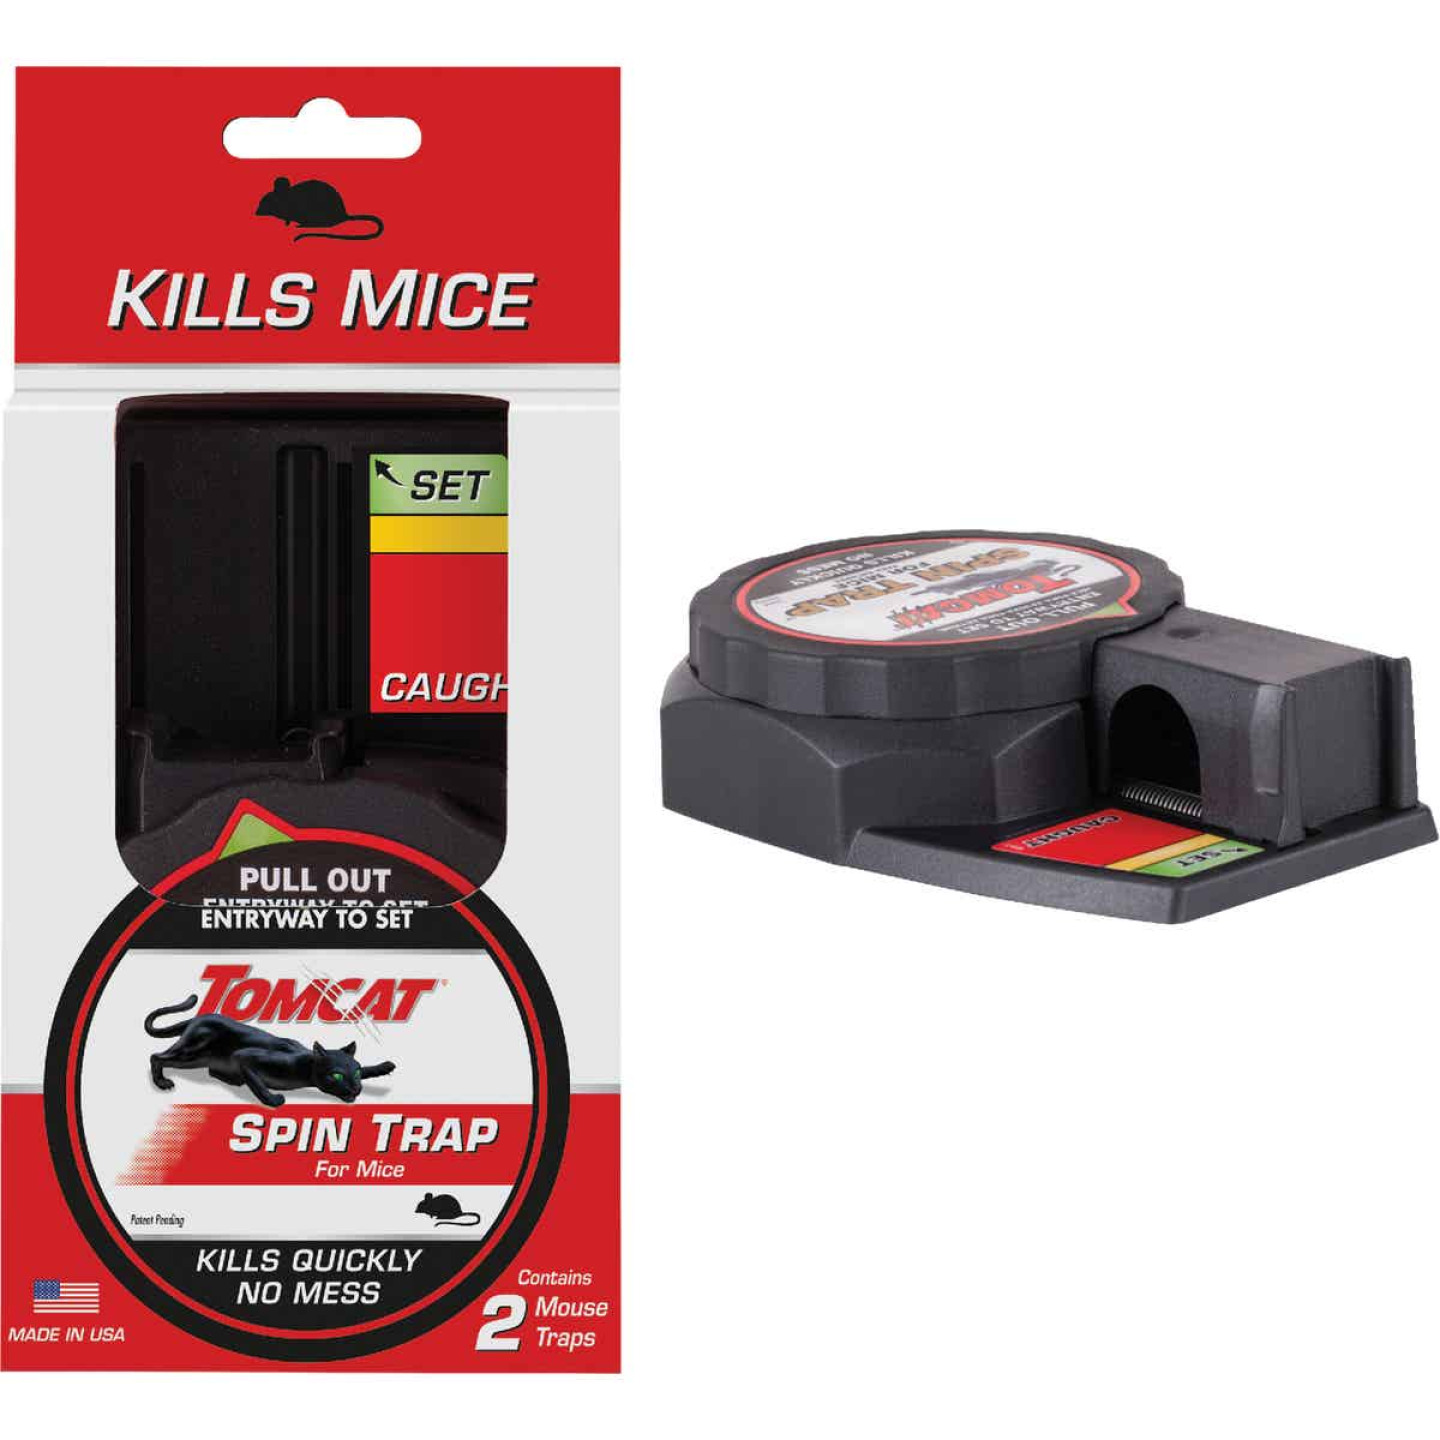 Tomcat Spin Trap Mechanical Mouse Trap (2-Pack) Image 1